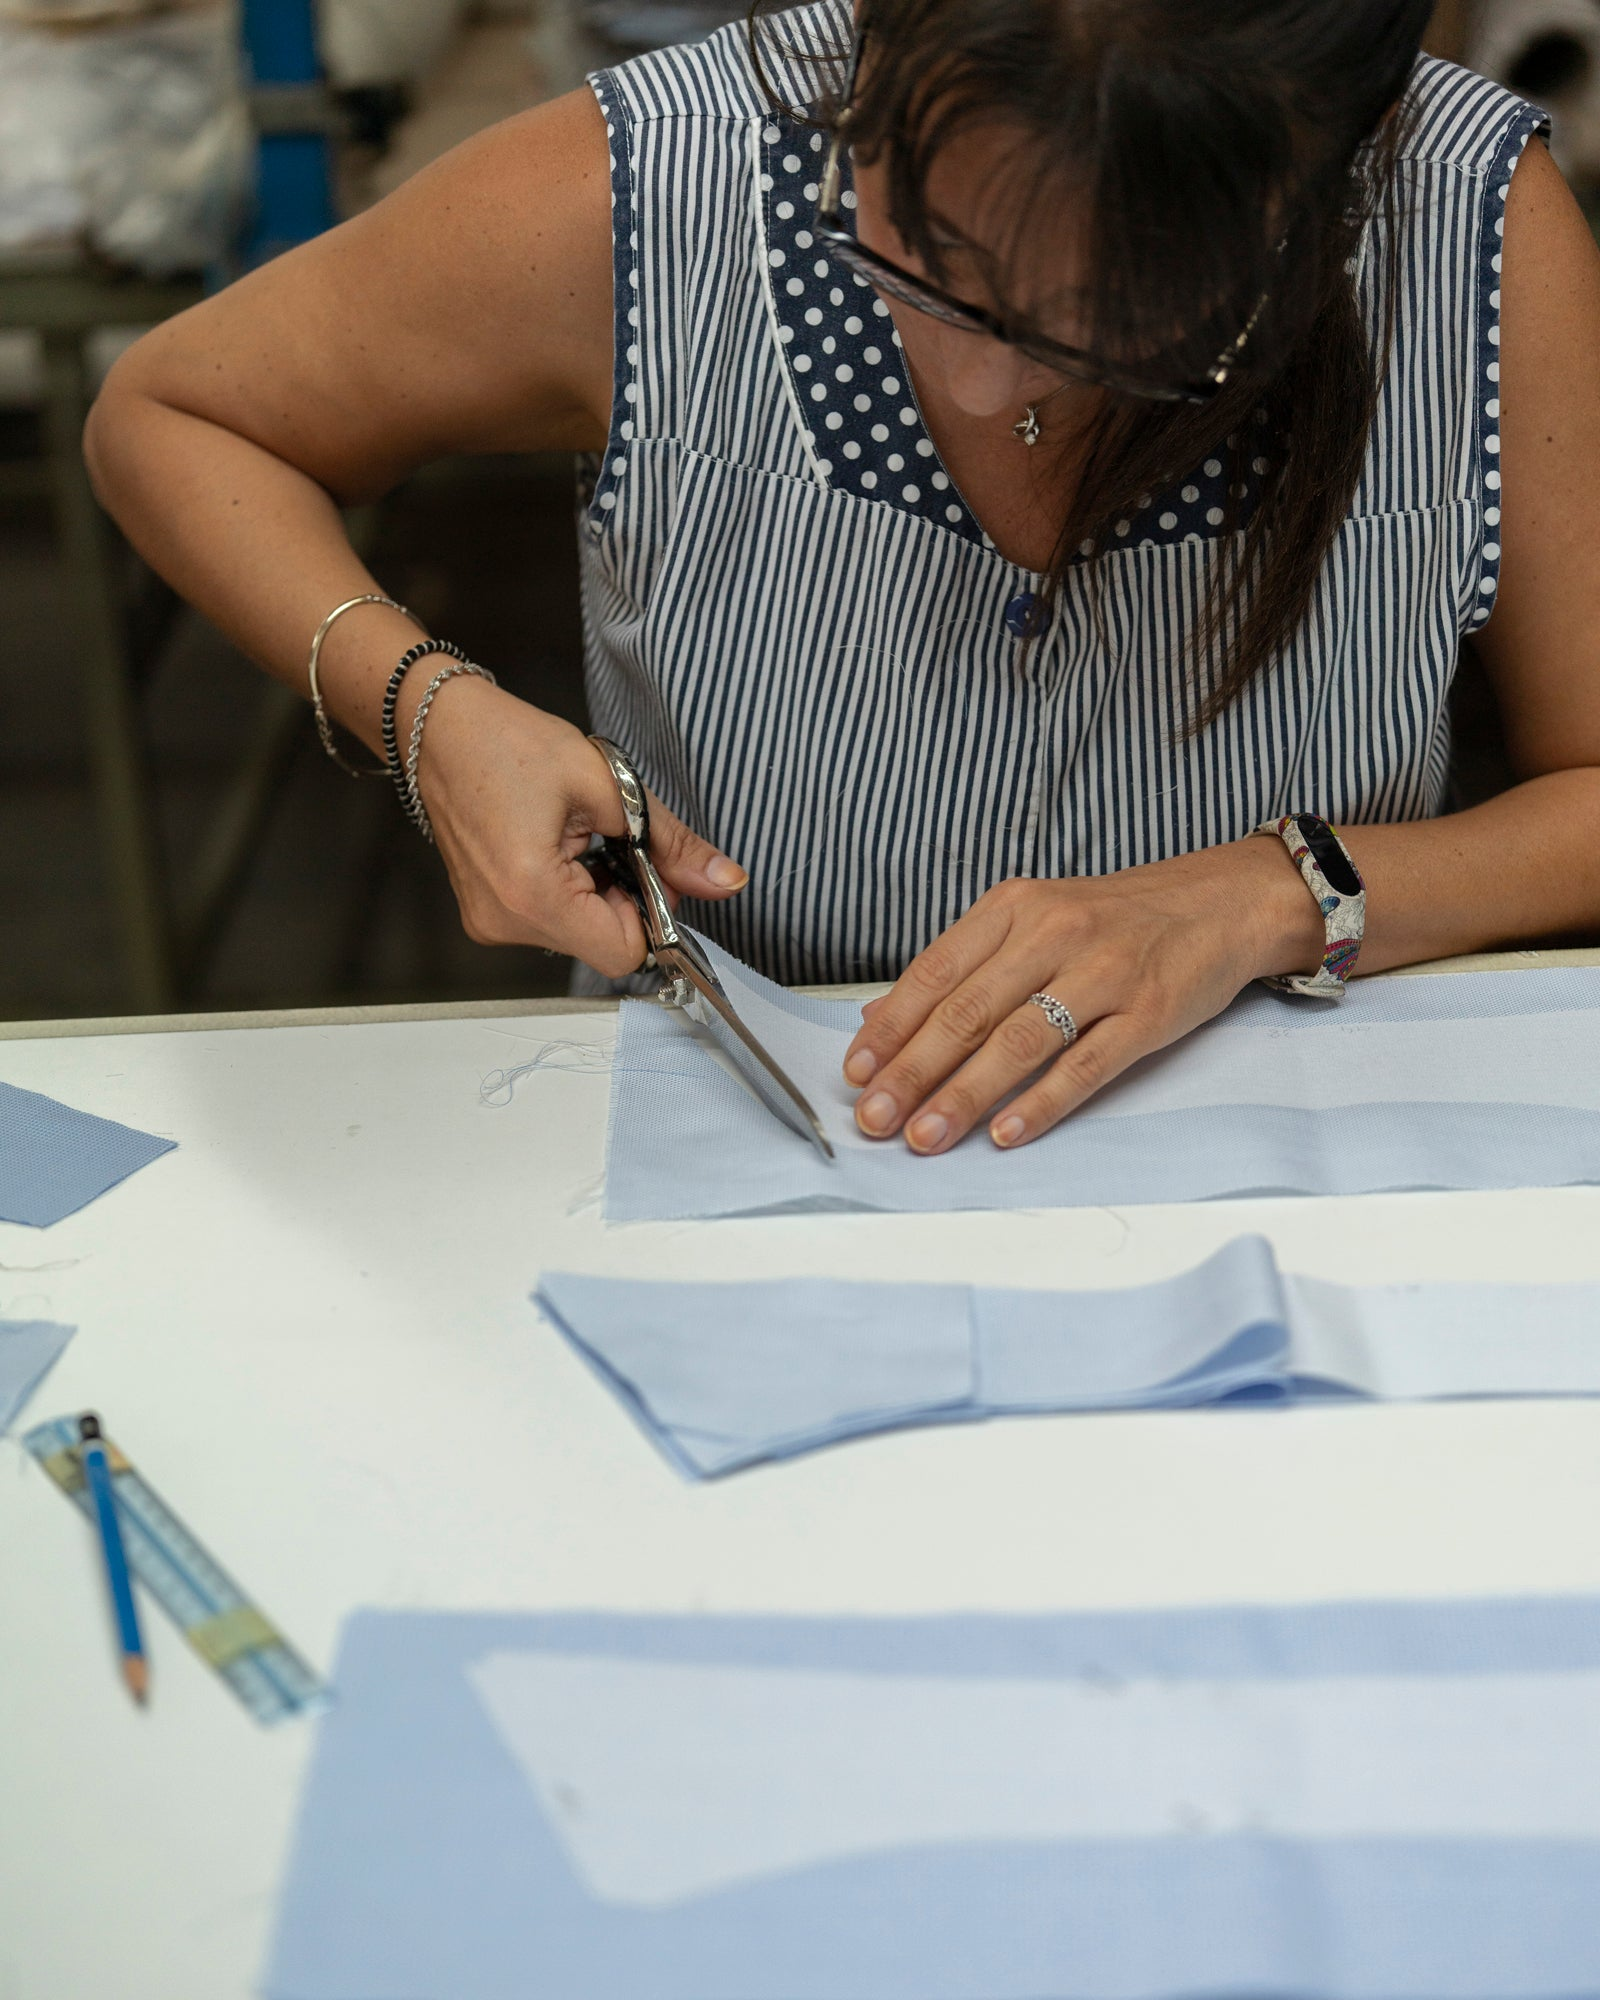 Handcutting the pattern of the shirt